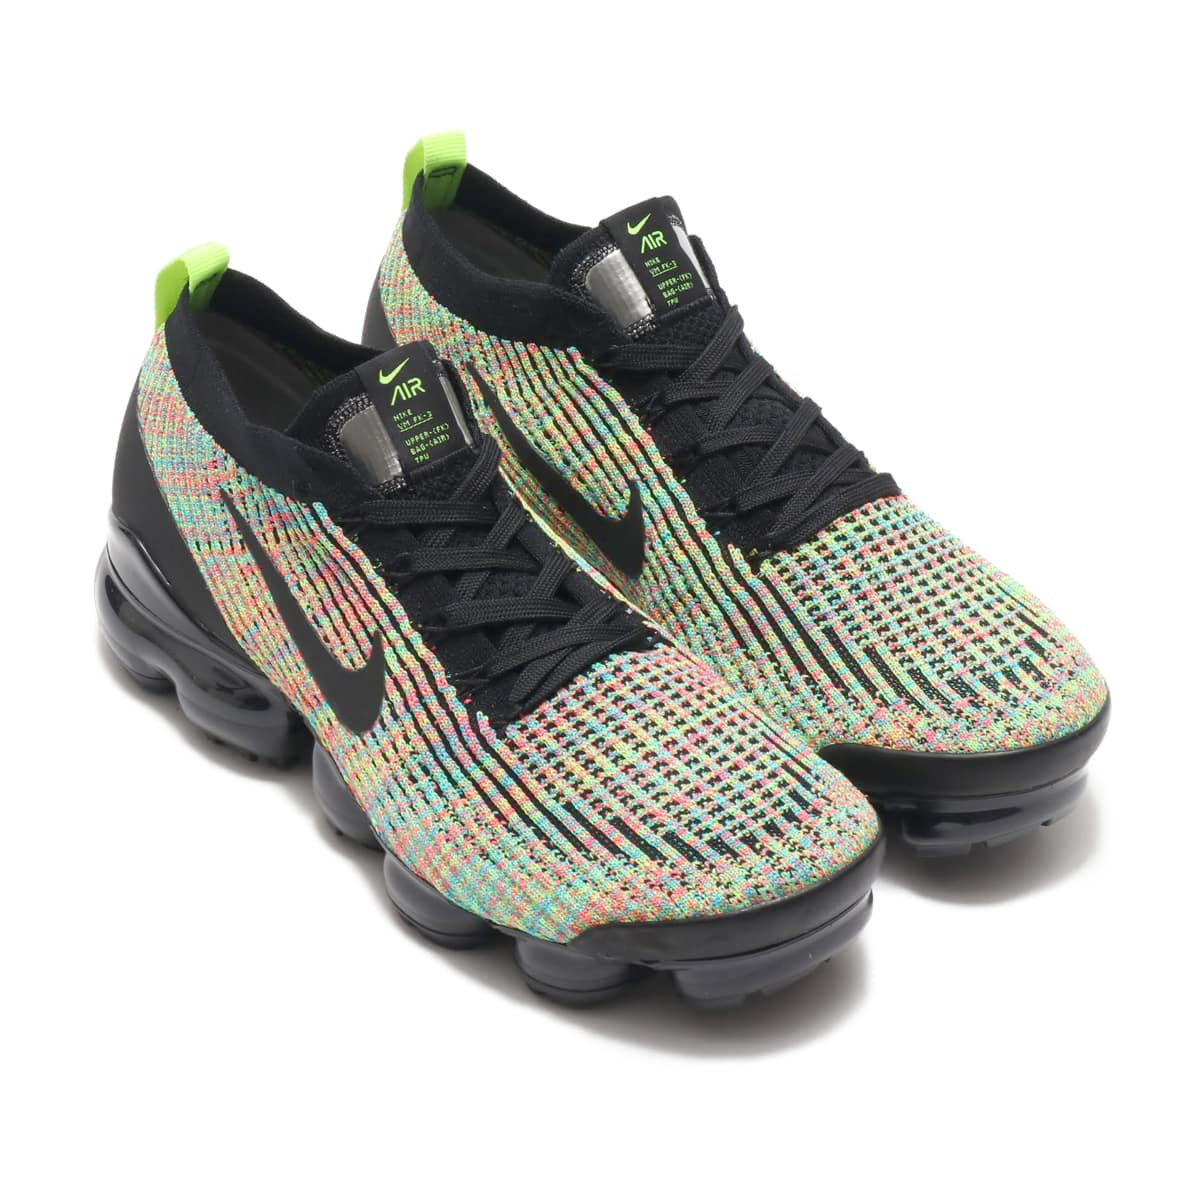 NIKE AIR VAPORMAX FLYKNIT 3 BLACK/BLACK-VOLT-BLUE LAGOON 19SU-S_photo_large